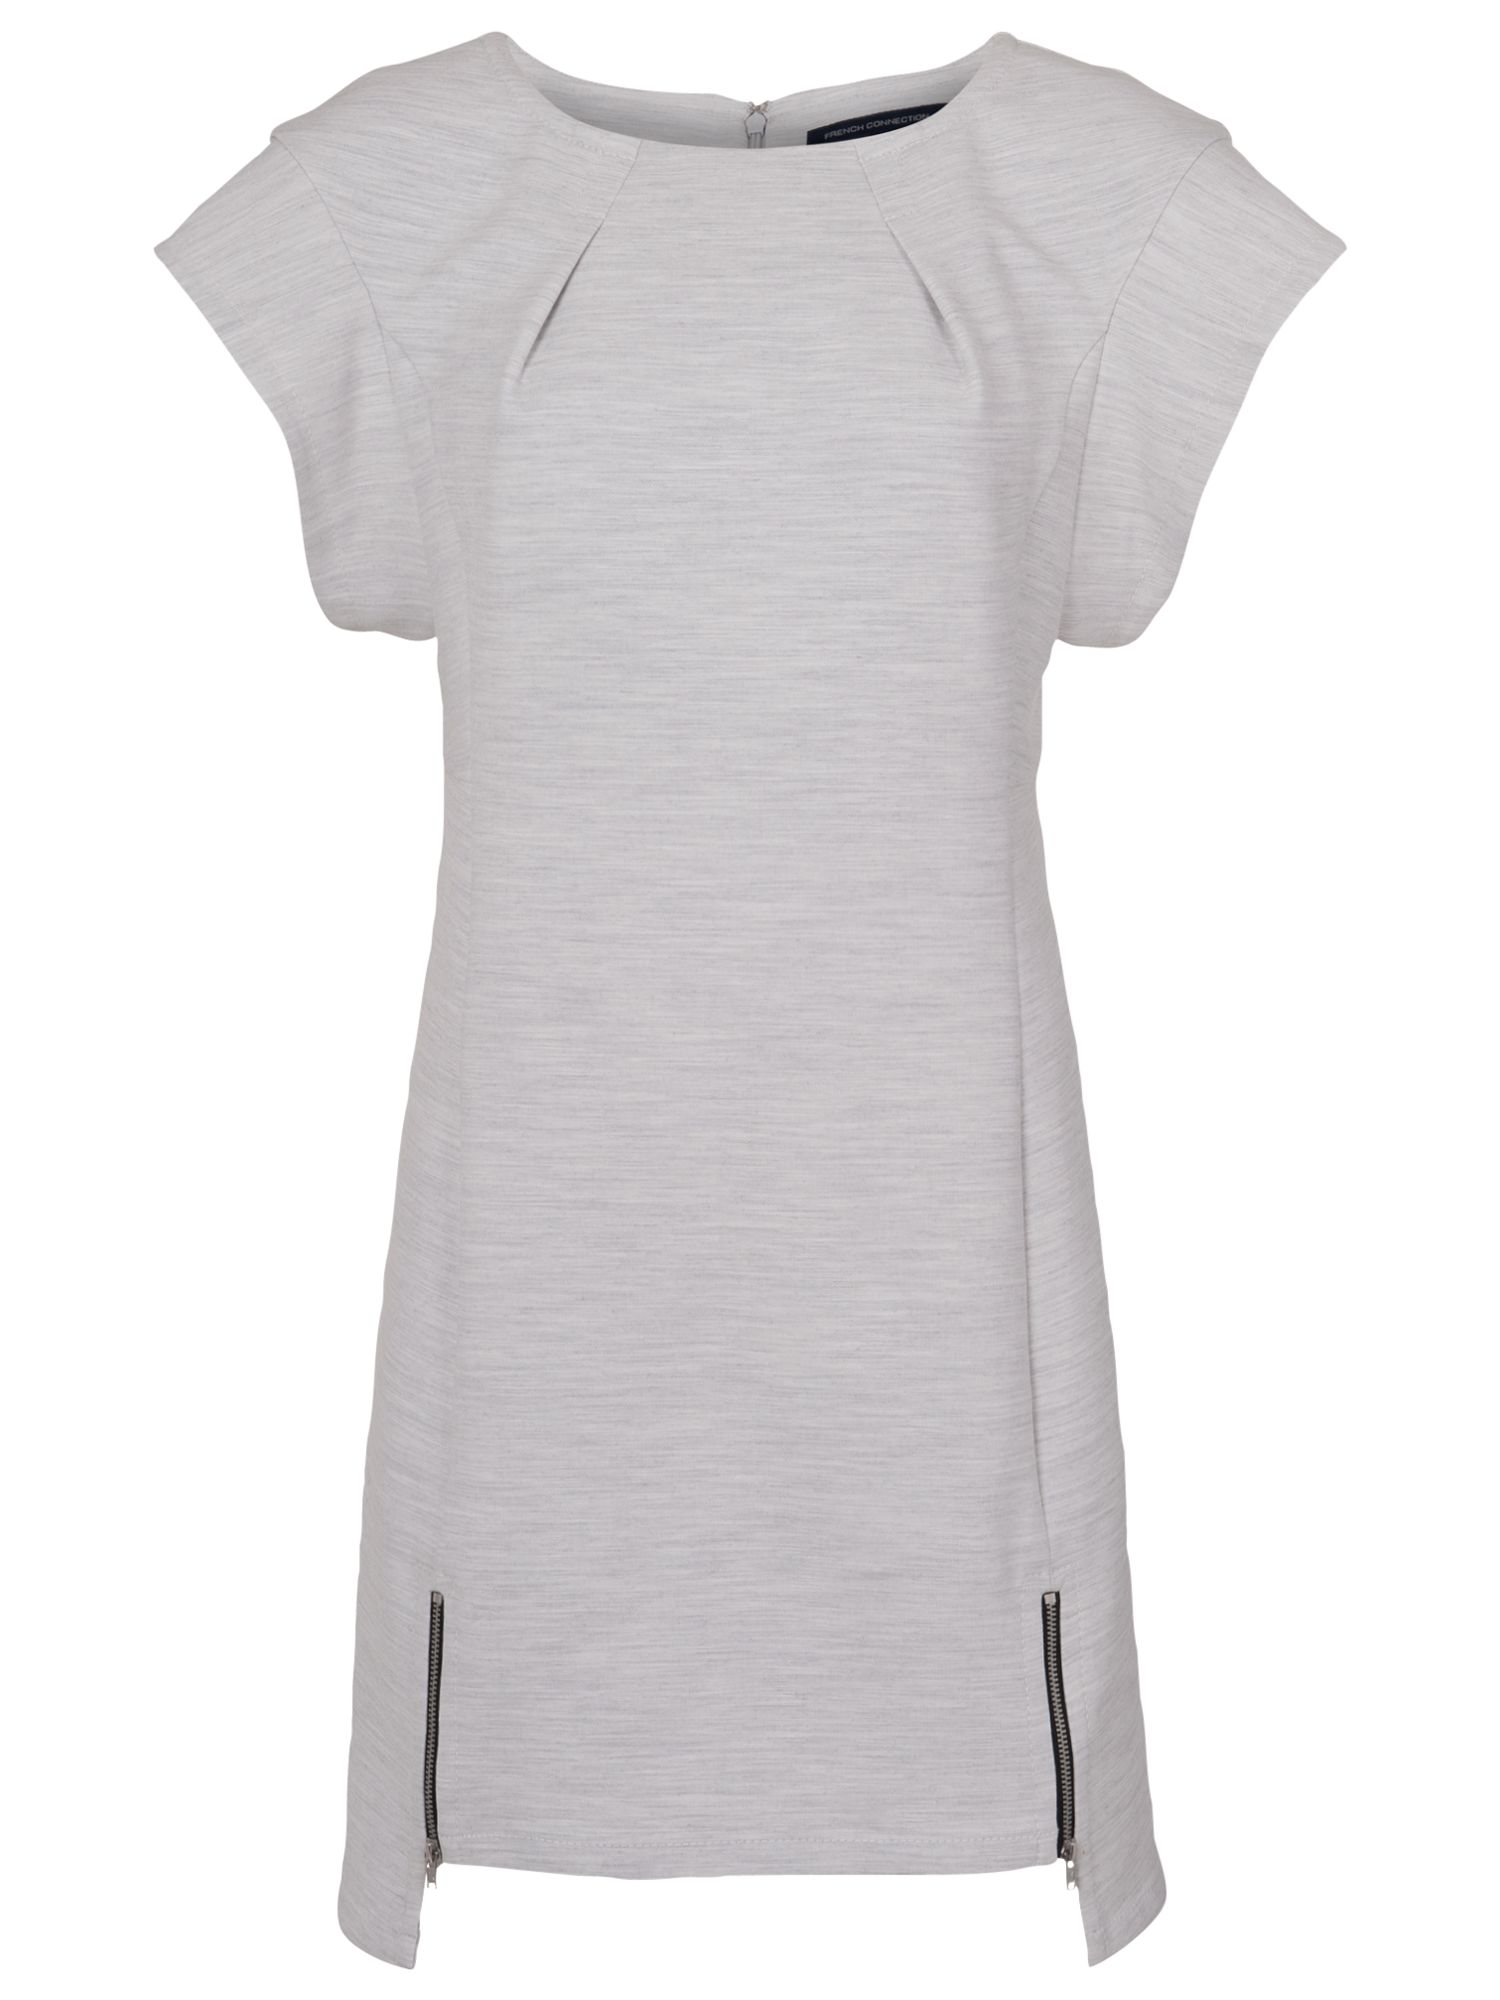 french connection olympic marl dress grey, french, connection, olympic, marl, dress, grey, french connection, 16|14, clearance, womenswear offers, womens dresses offers, women, inactive womenswear, new reductions, womens dresses, special offers, 1581360